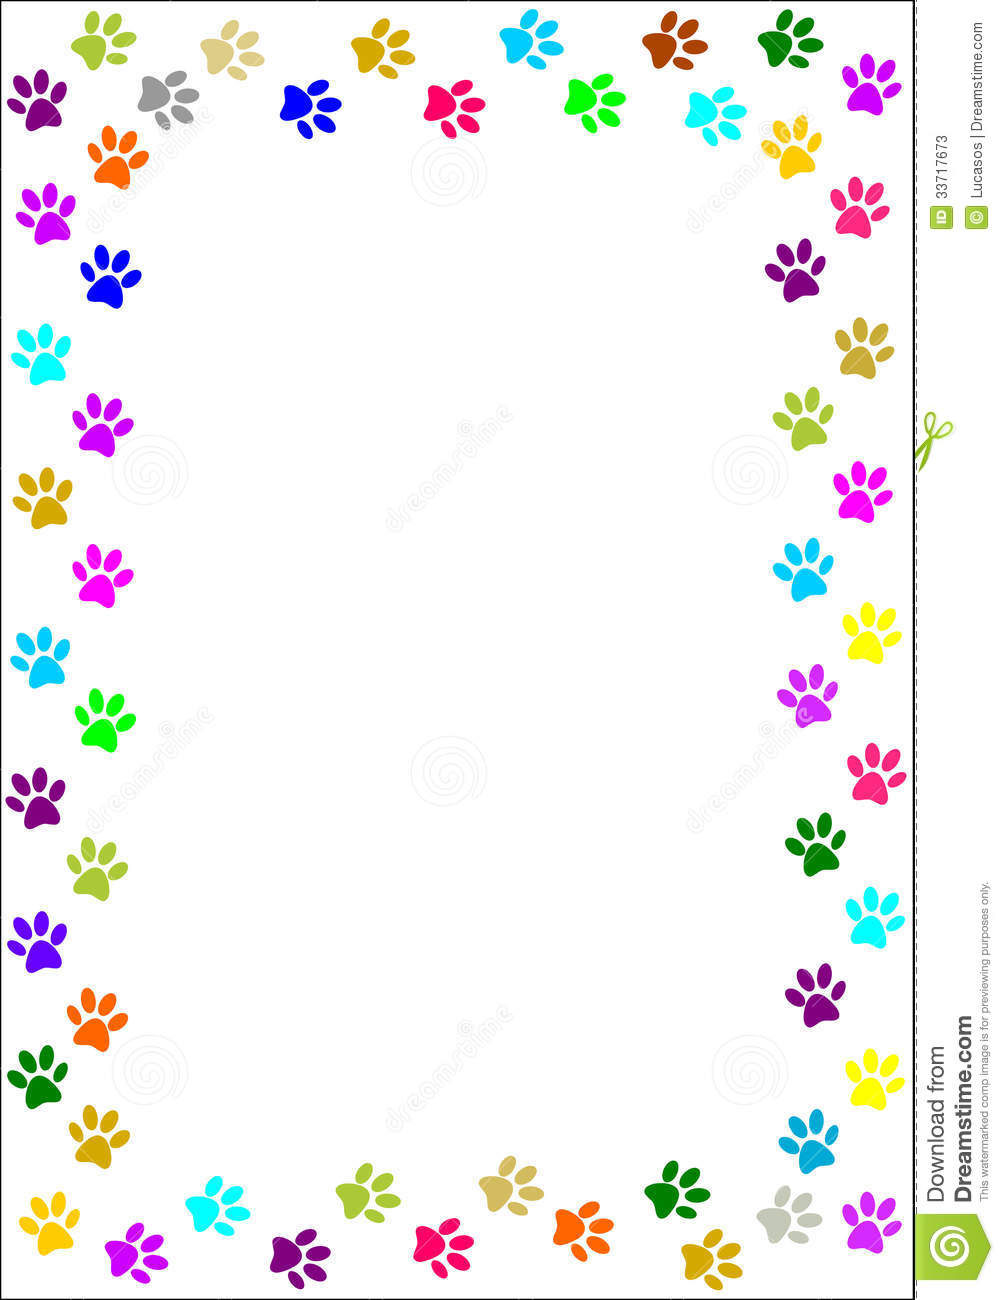 Colored Dog Paw Print Border Colorful Paw Print Border